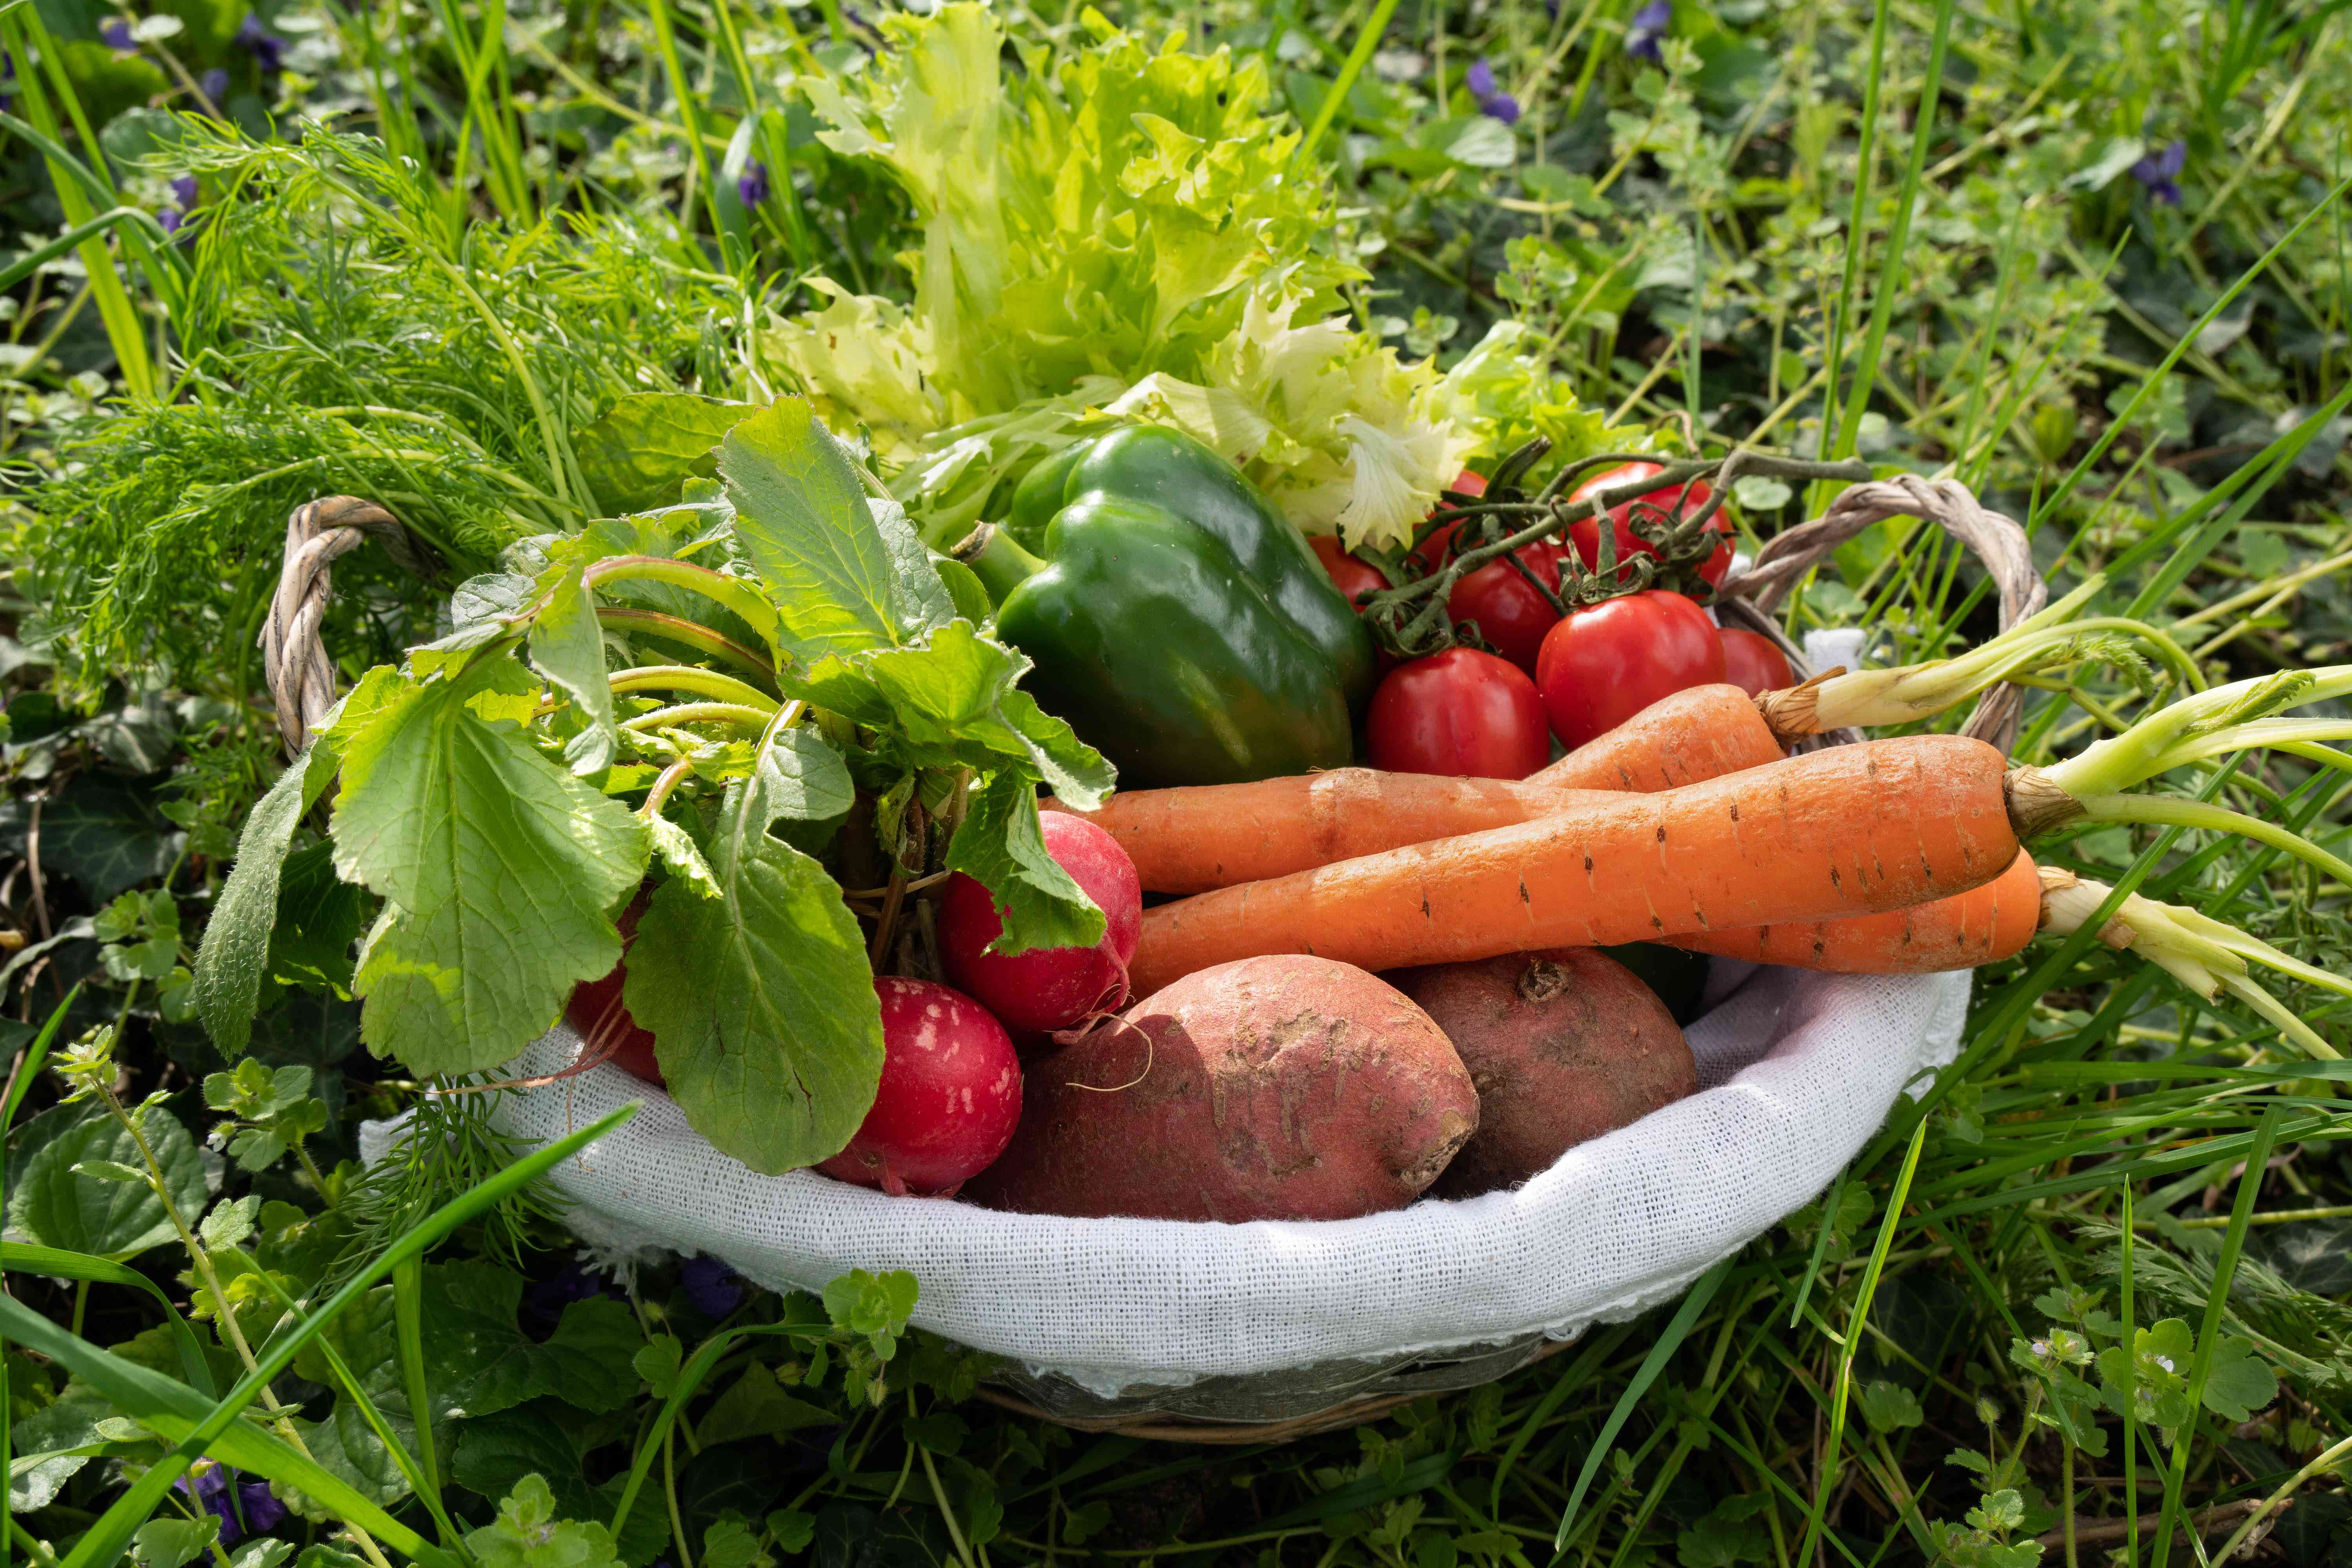 a basket in grass overflowing with fresh vegetables like carrots sweet potatoes and tomatoes